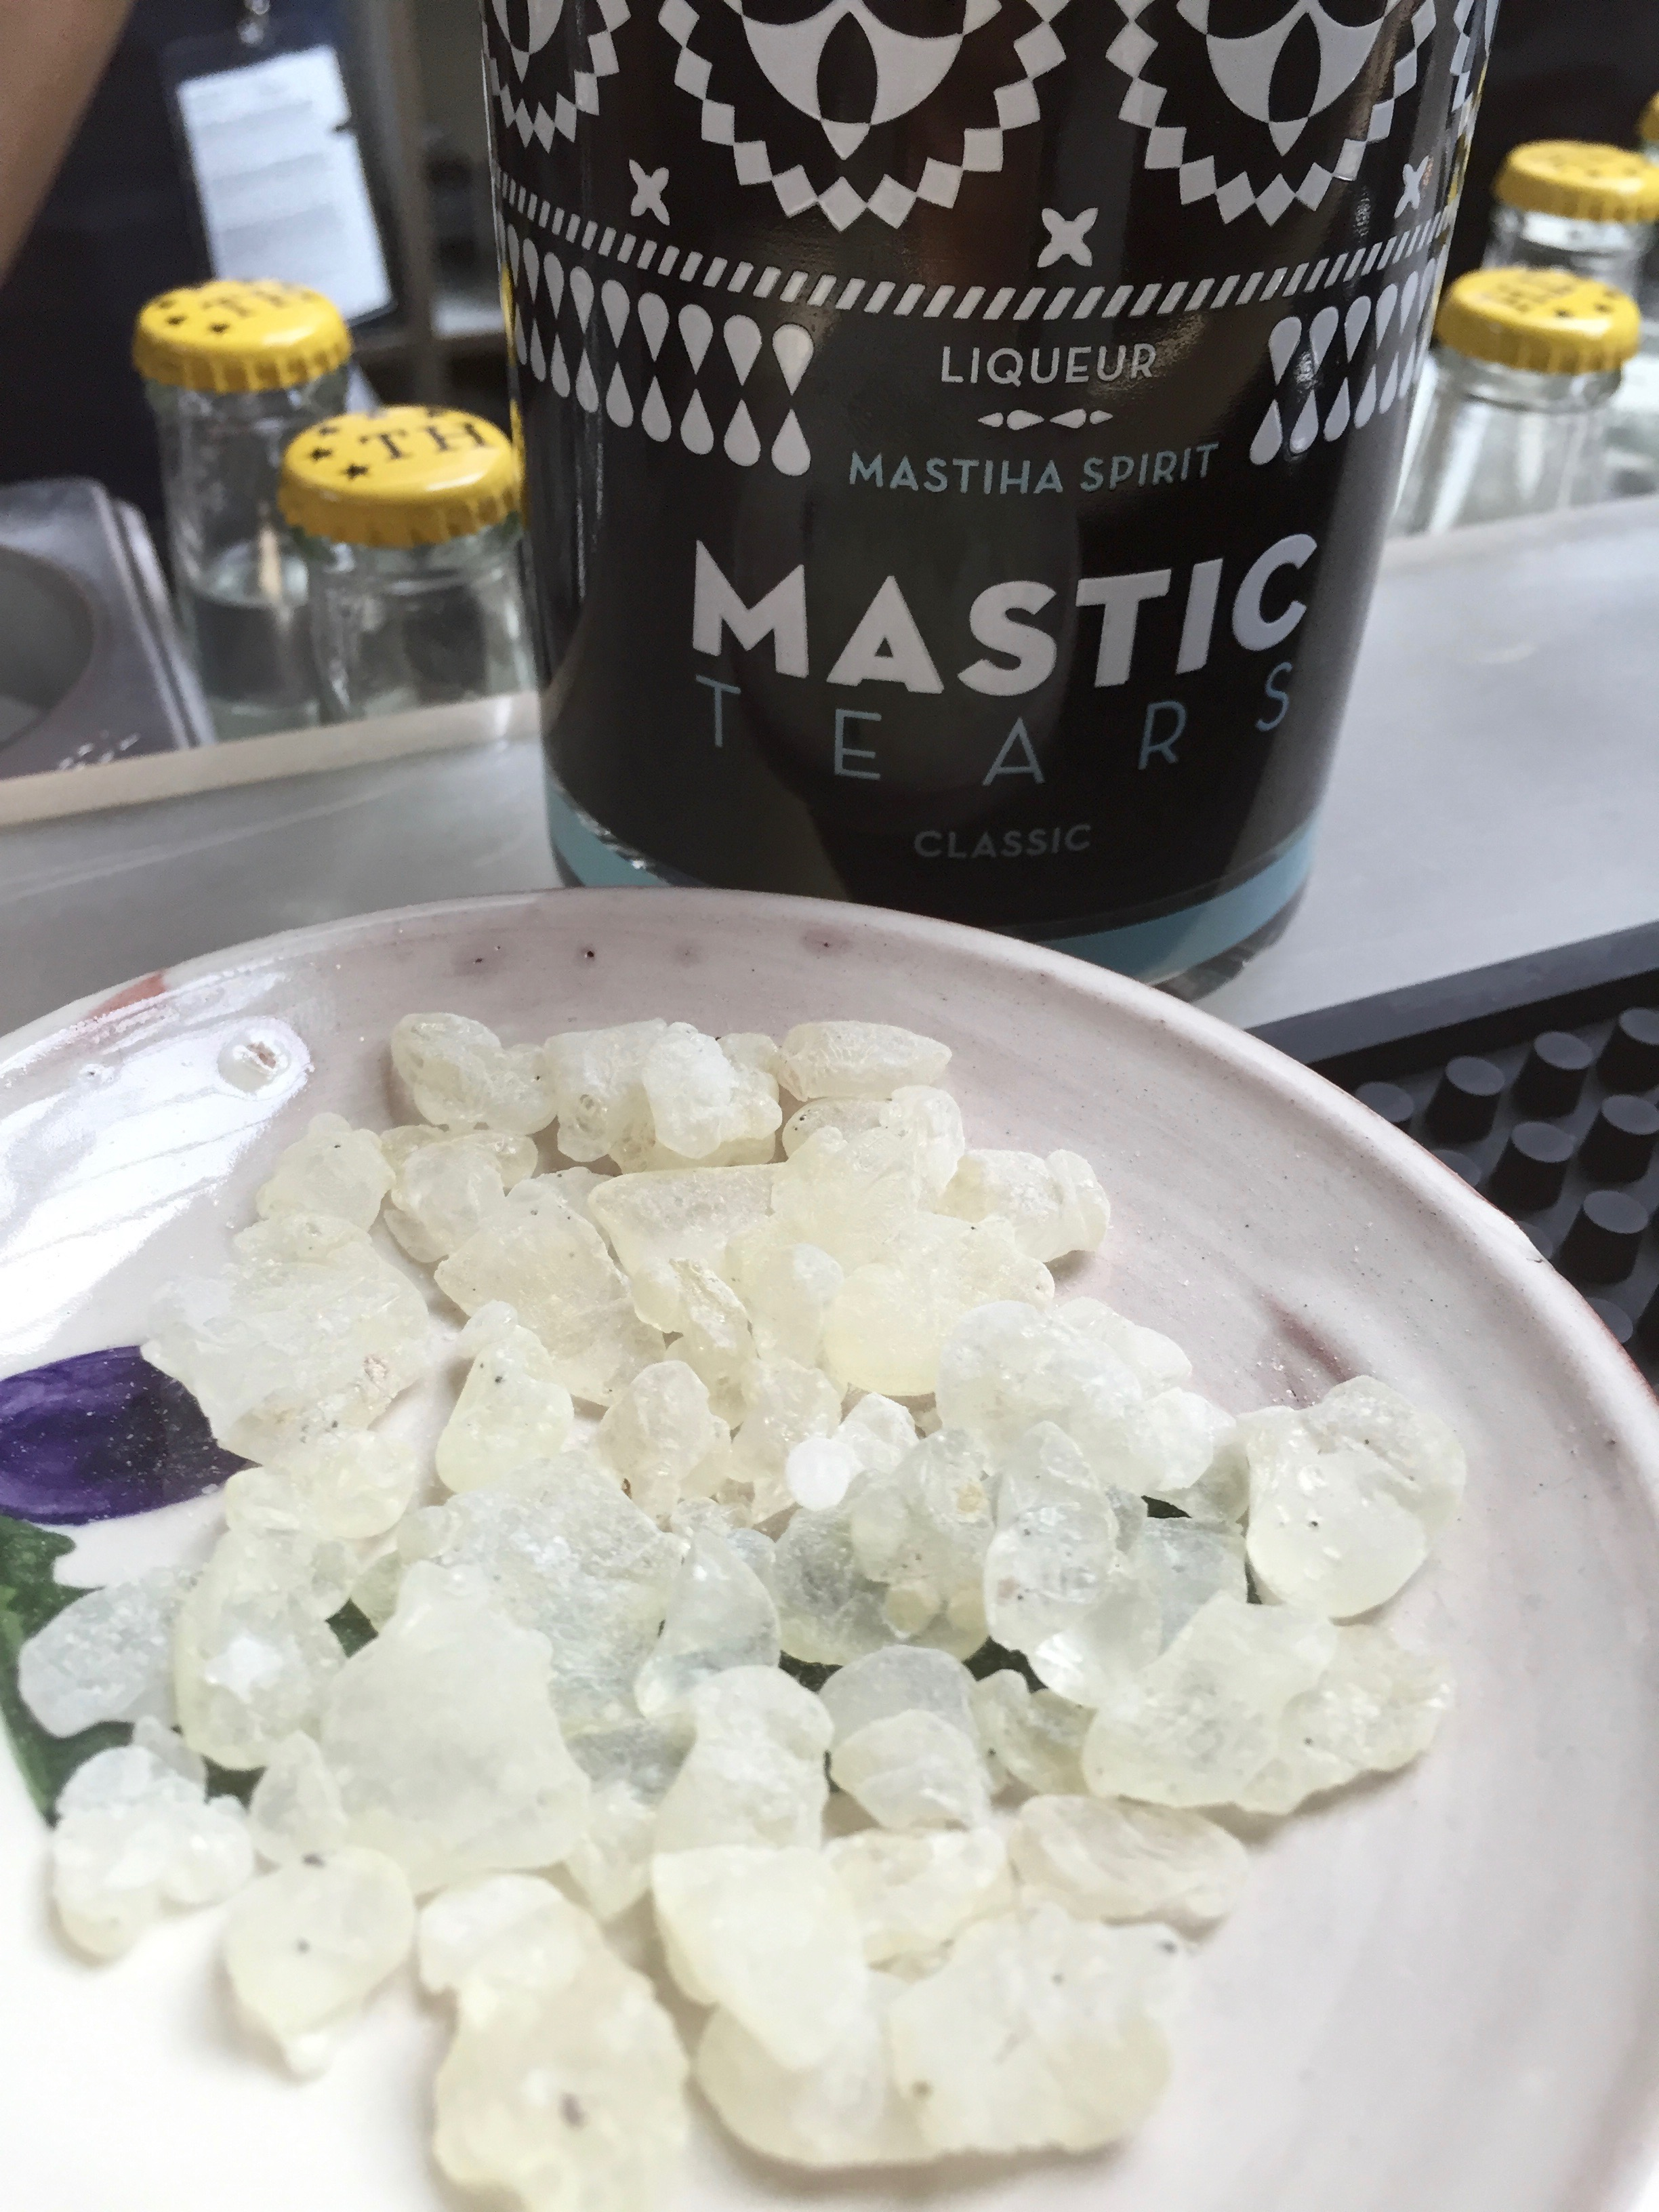 Mastica liqueur called Mastic Tears.